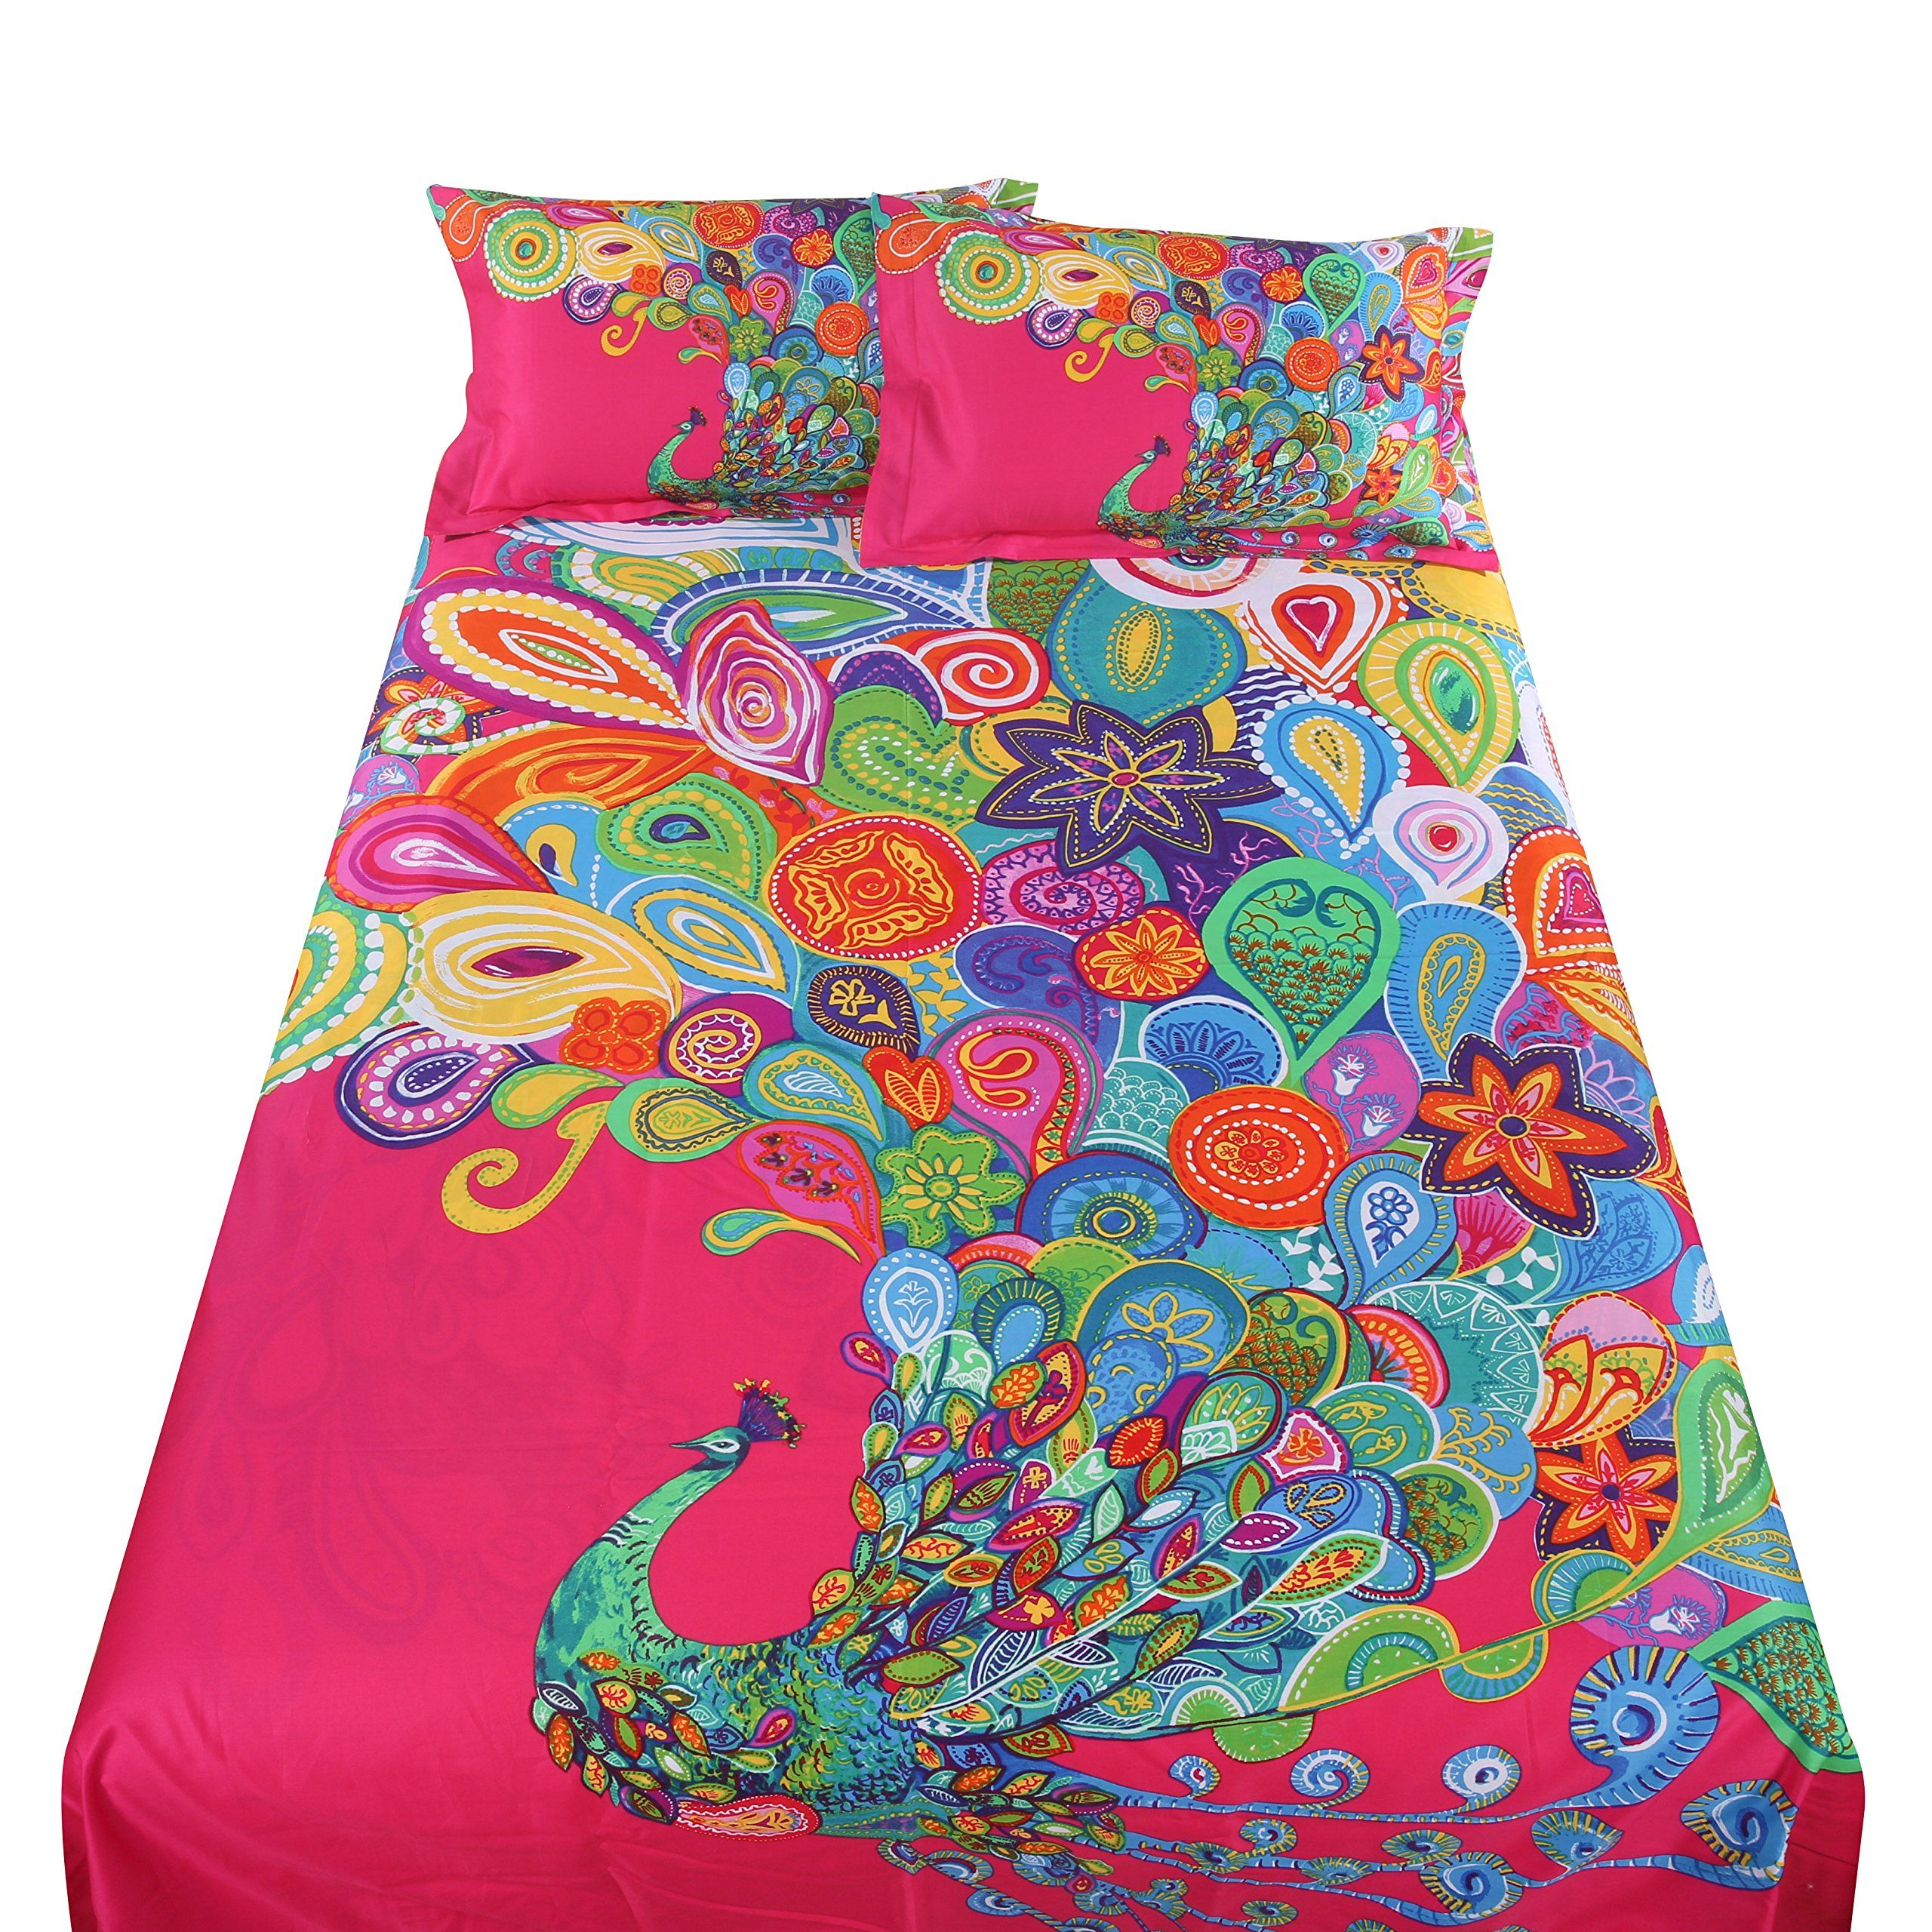 twin philippines comforter baby sheets of double kitty price size bedding bedroom bed set online full hello